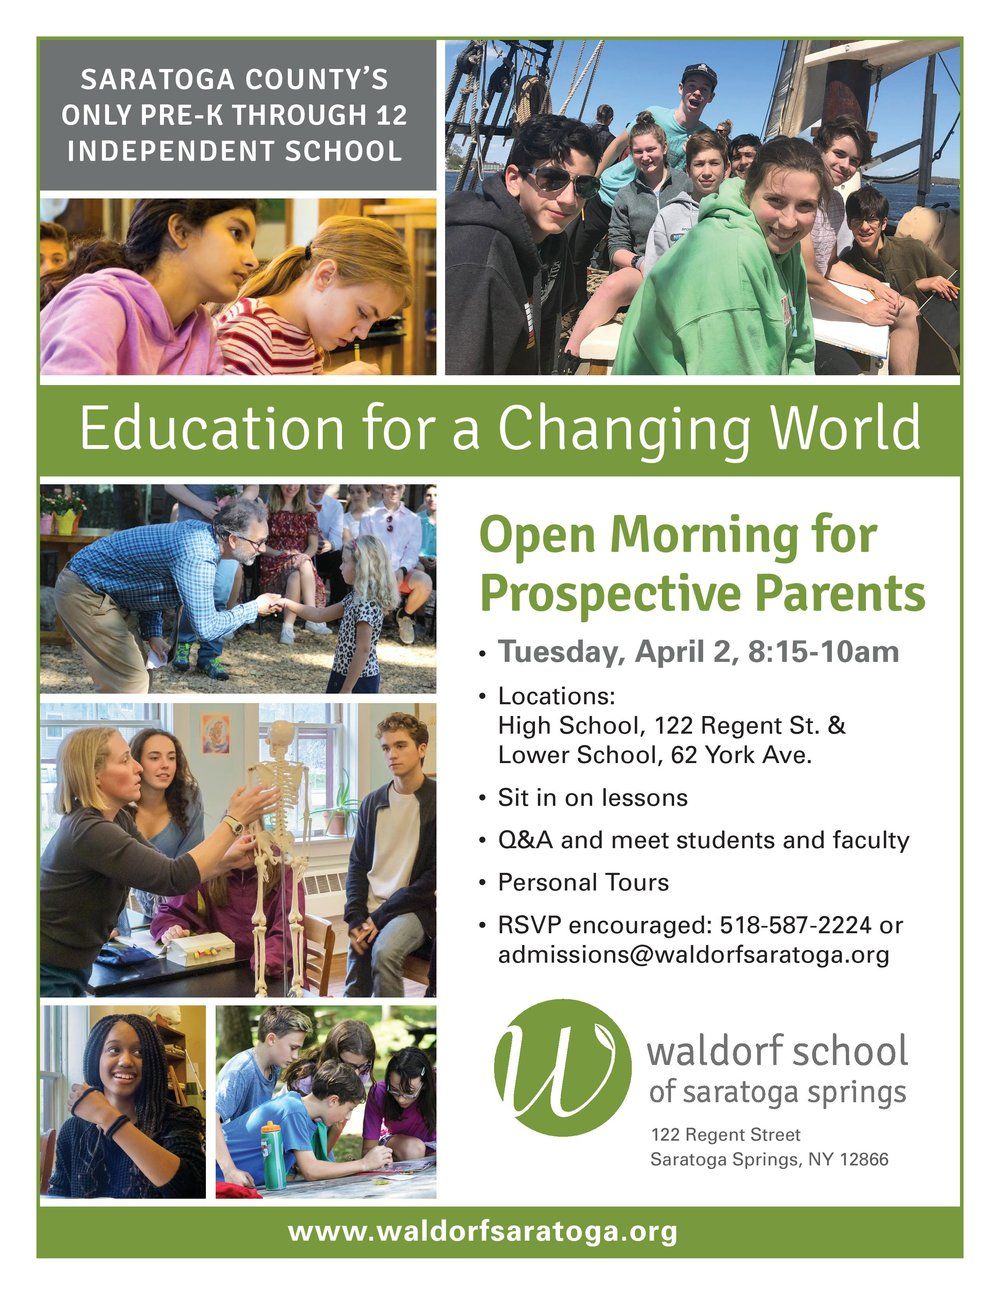 WSS_fullpage_OpenMorning_April2_v4-page-001.jpg